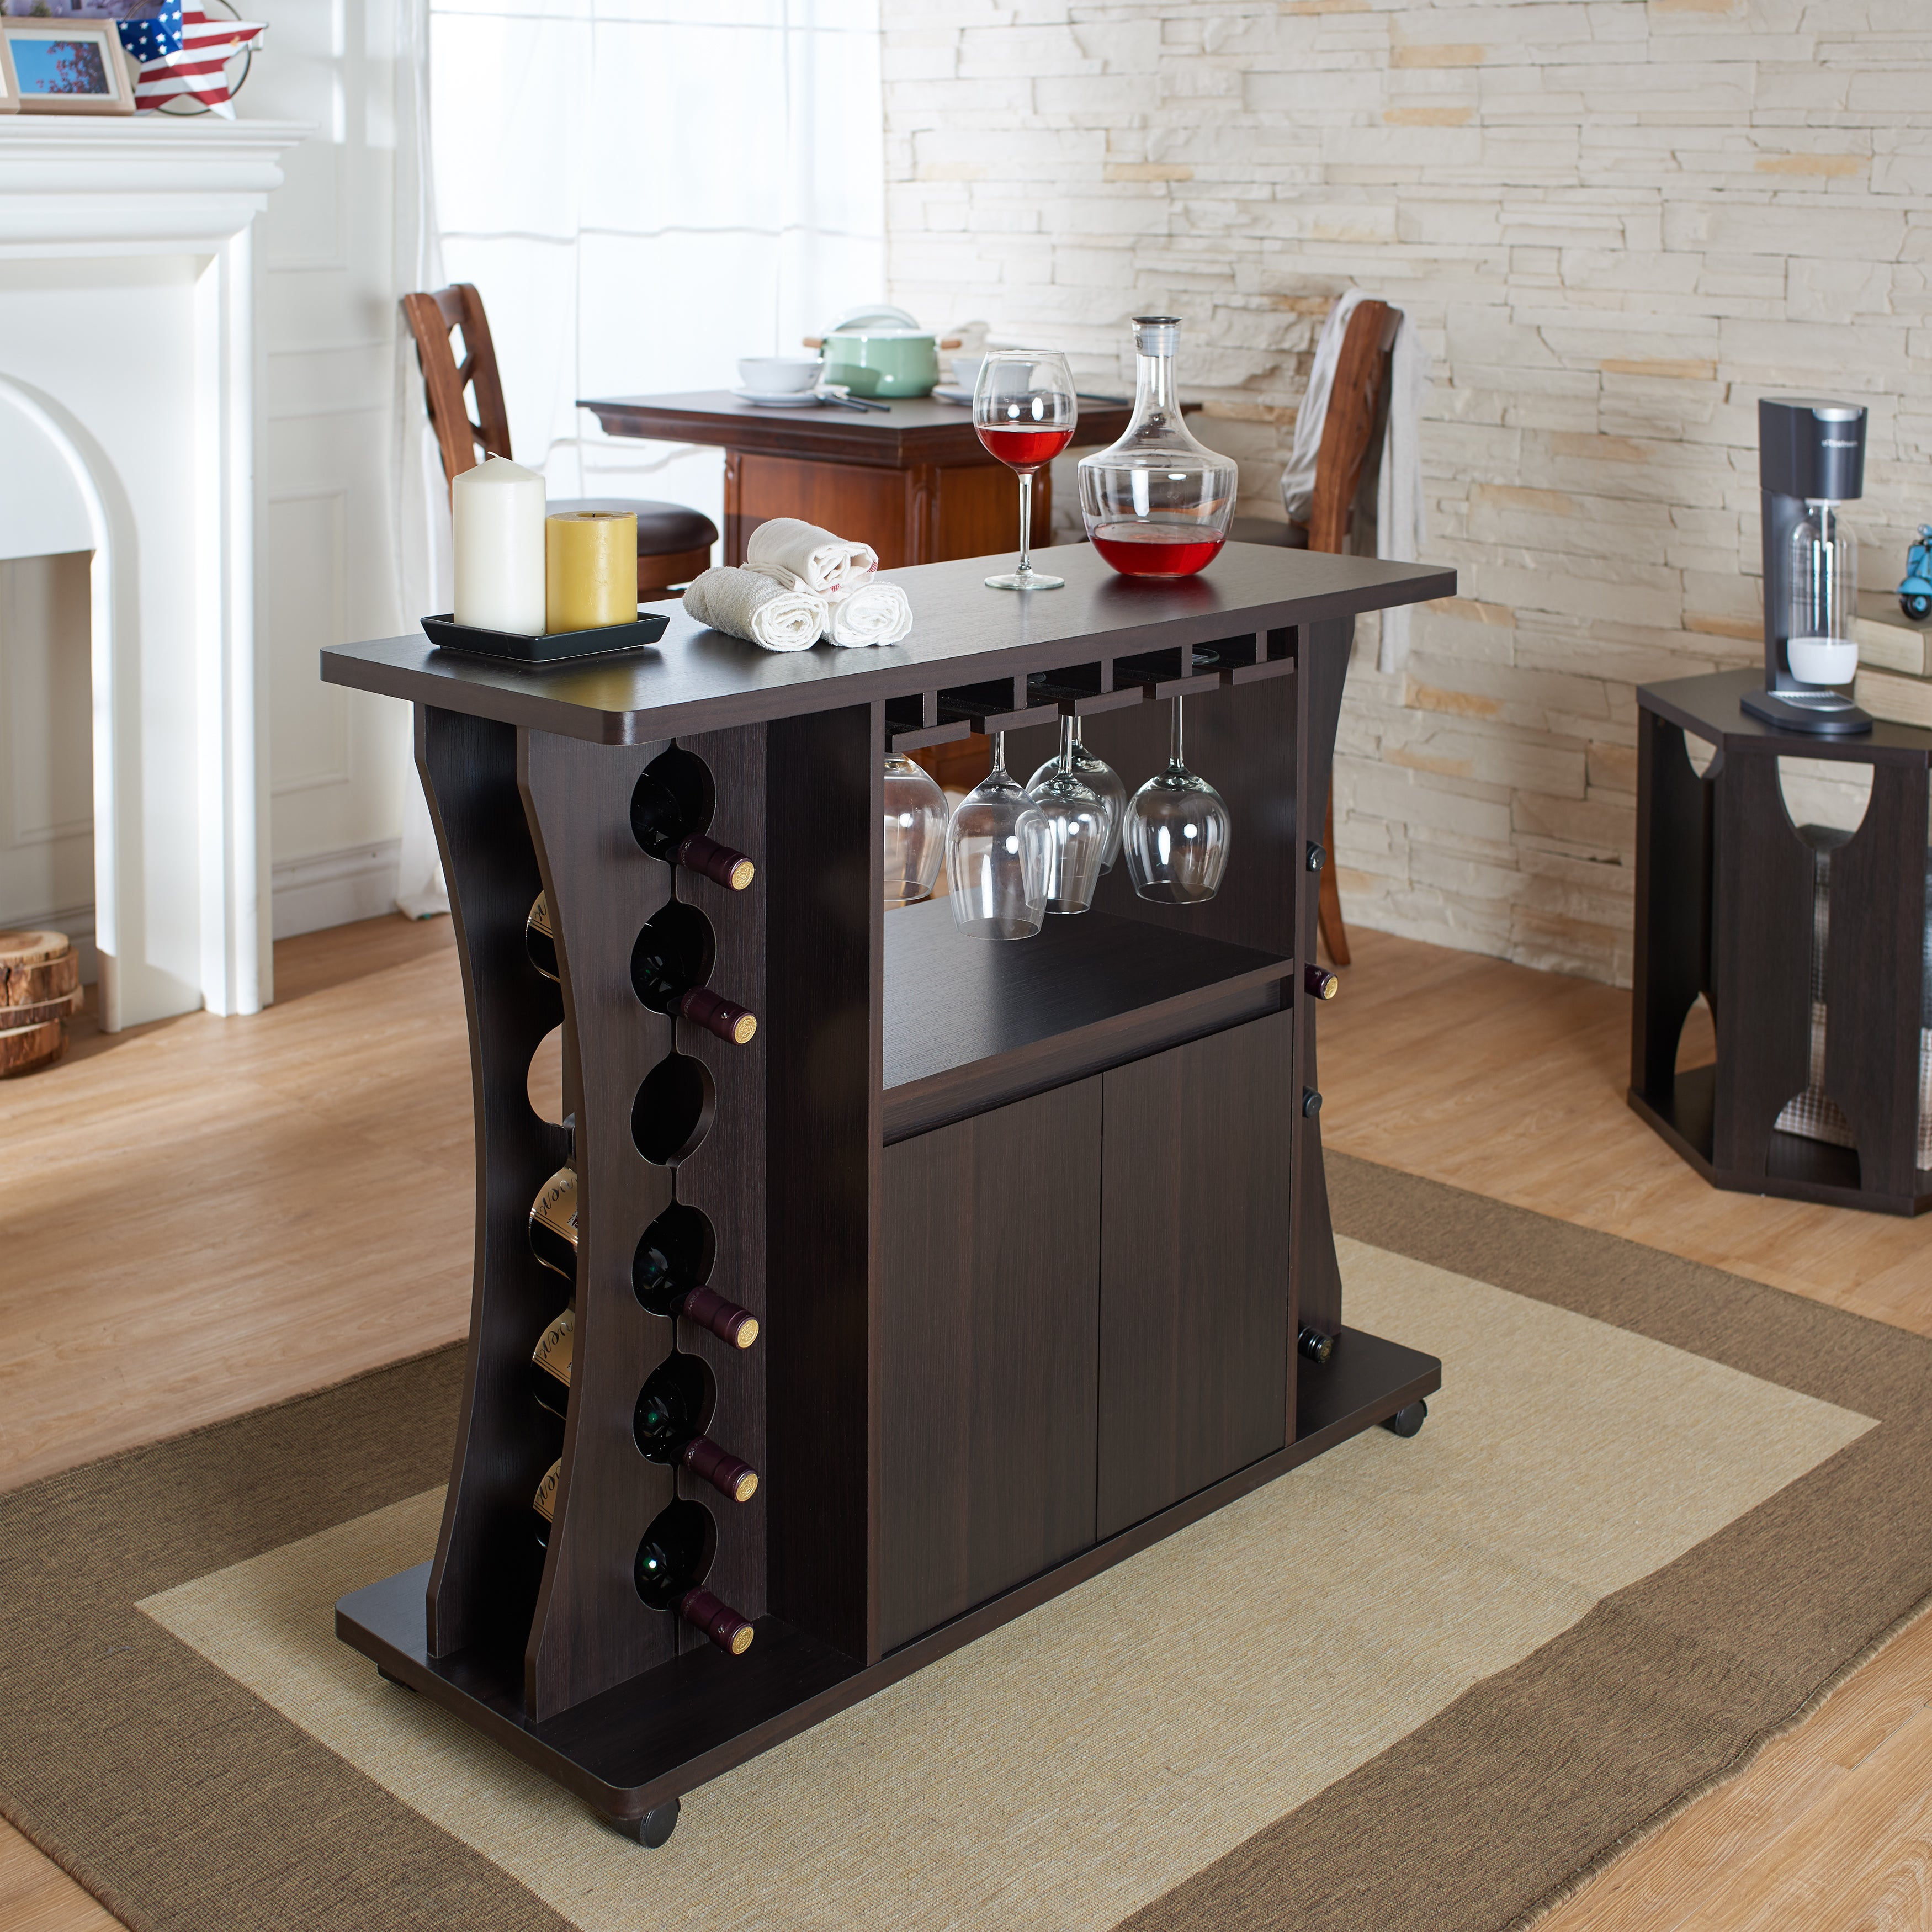 Details About Wine Bar Set 35.9X43.31X15.75 Glass Bottle Storage Wooden  Bottom Cabinet Wheeled Intended For Buffets With Bottle And Glass Storage (Photo 11 of 30)